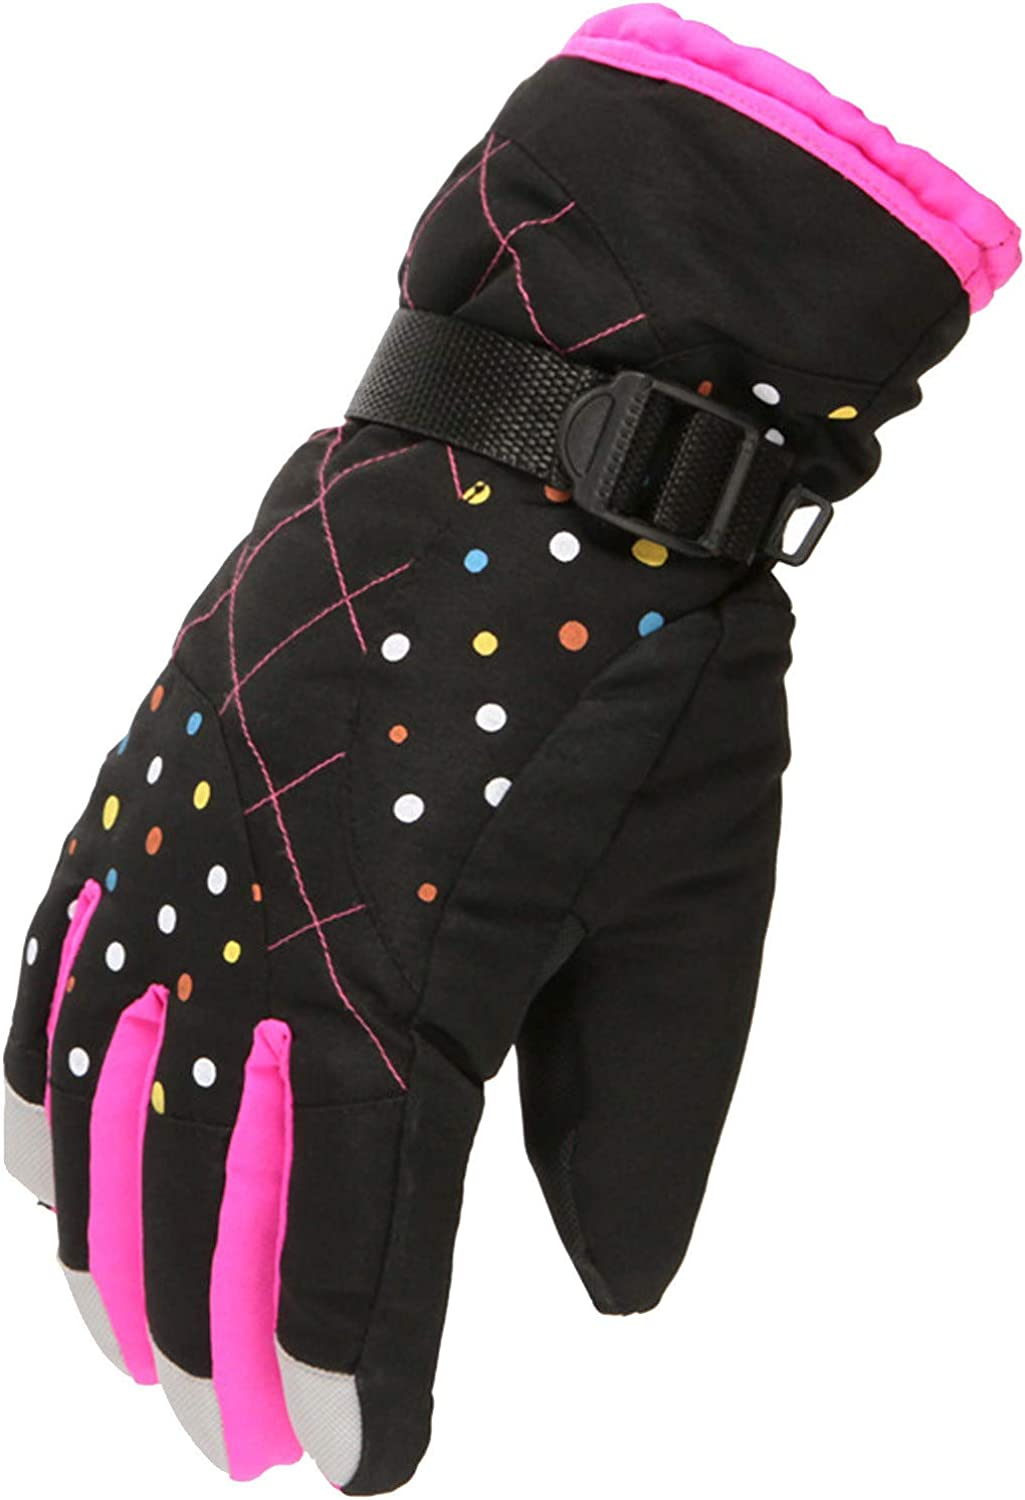 Women's Snow Windproof Warm Cold And Velvet Sports Riding Skating Gloves Fashion/Prom/Warm/Bicycle Gloves